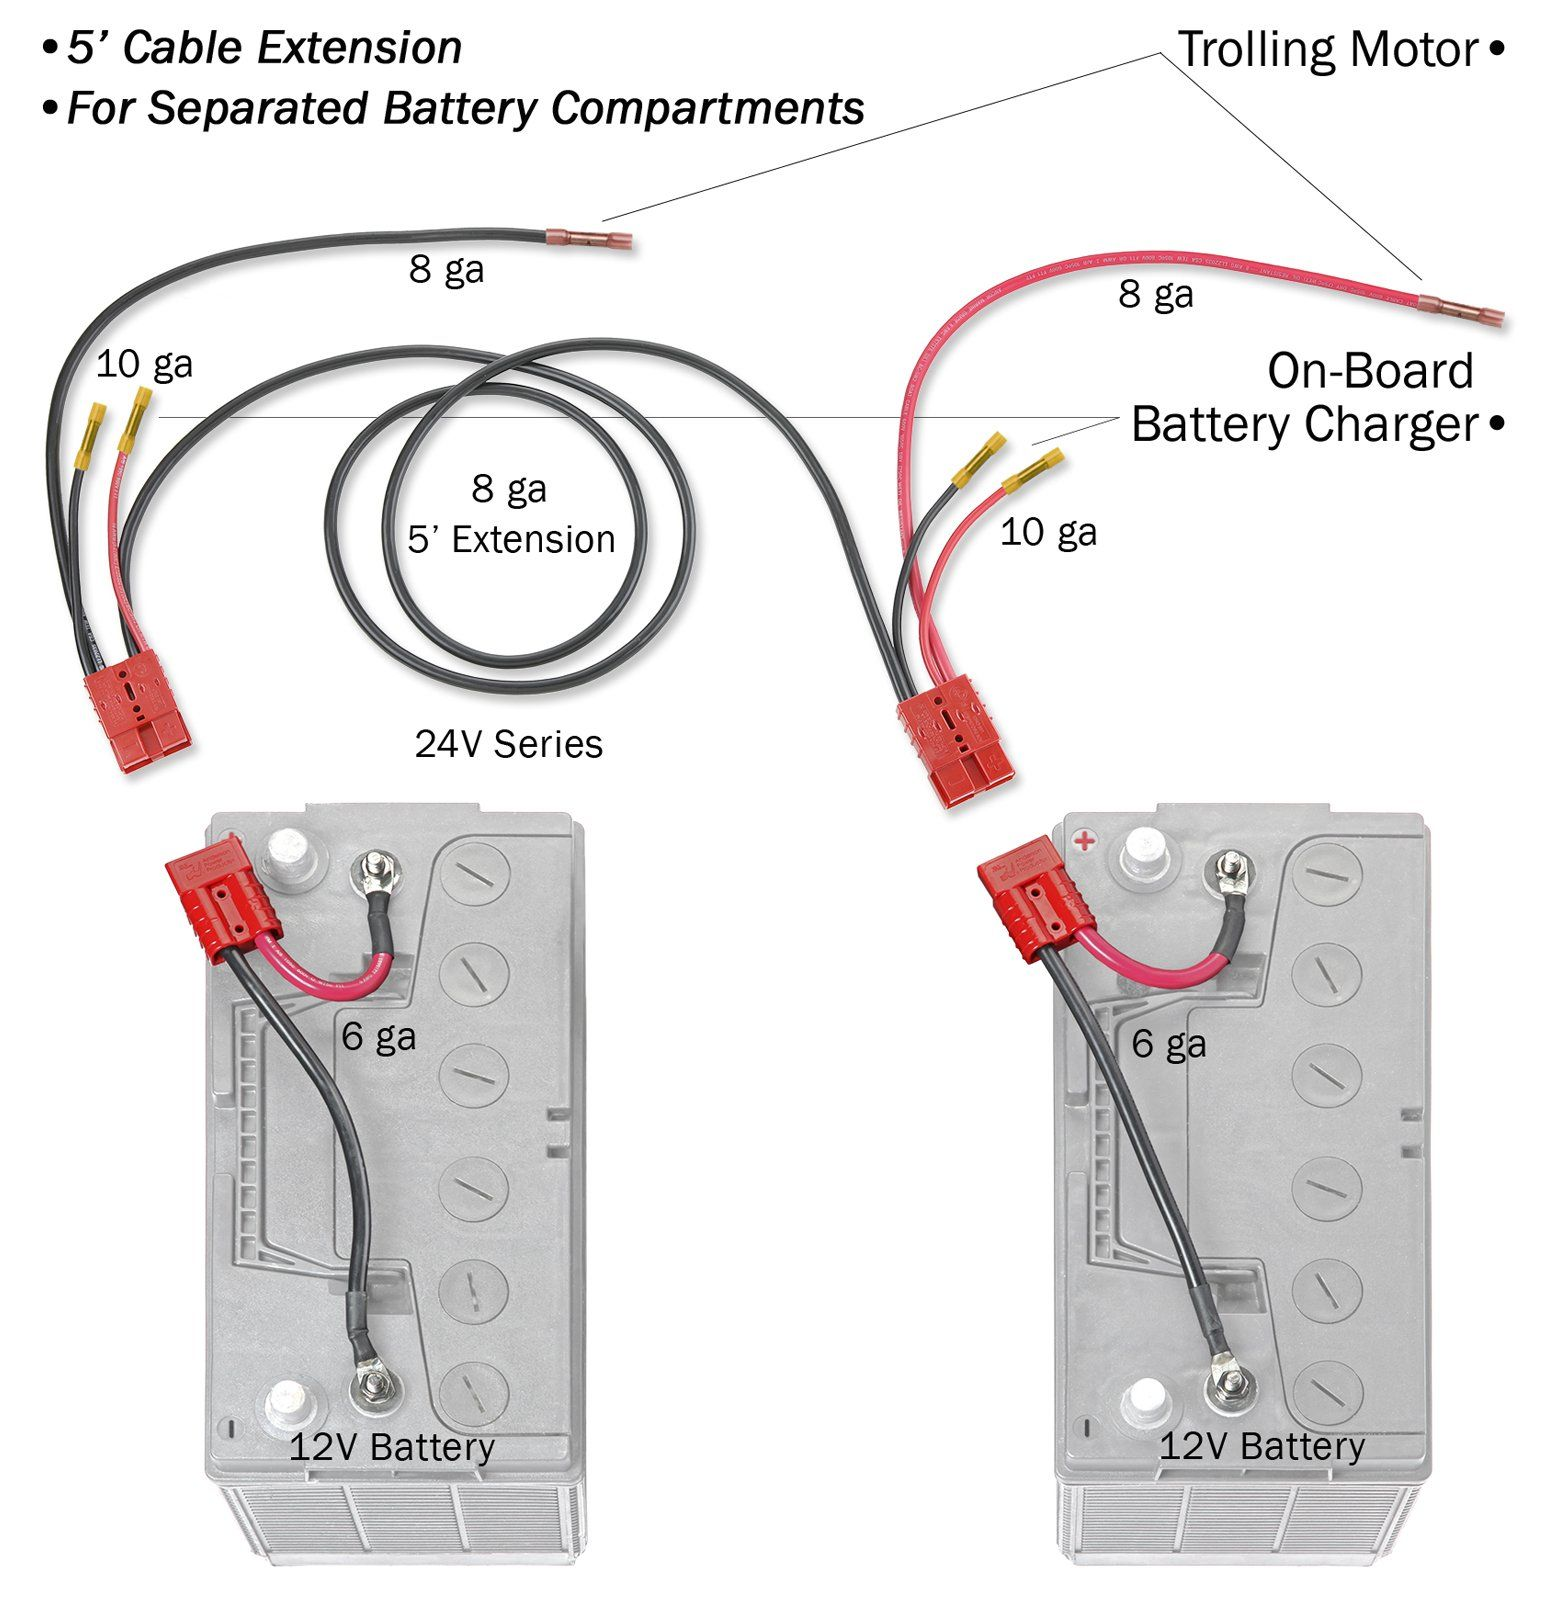 24 Volt Trolling Motor Connection 5 Extension For Separated Battery Compartments Rce24vb5chk Trolling Motor Marine Equipment Boat Battery